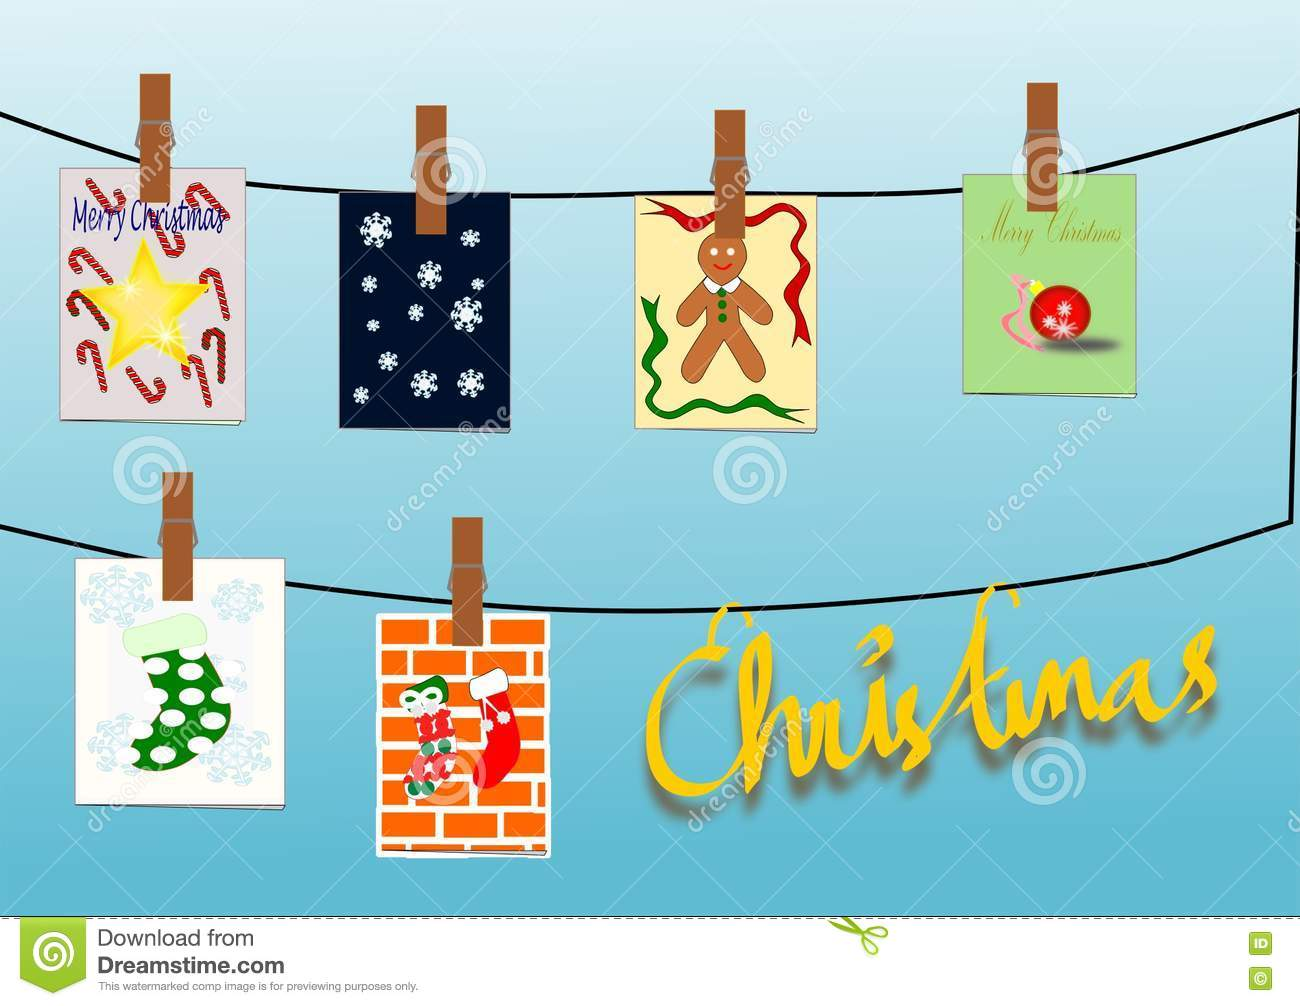 Christmas Cards stock illustration. Illustration of lines - 76516360